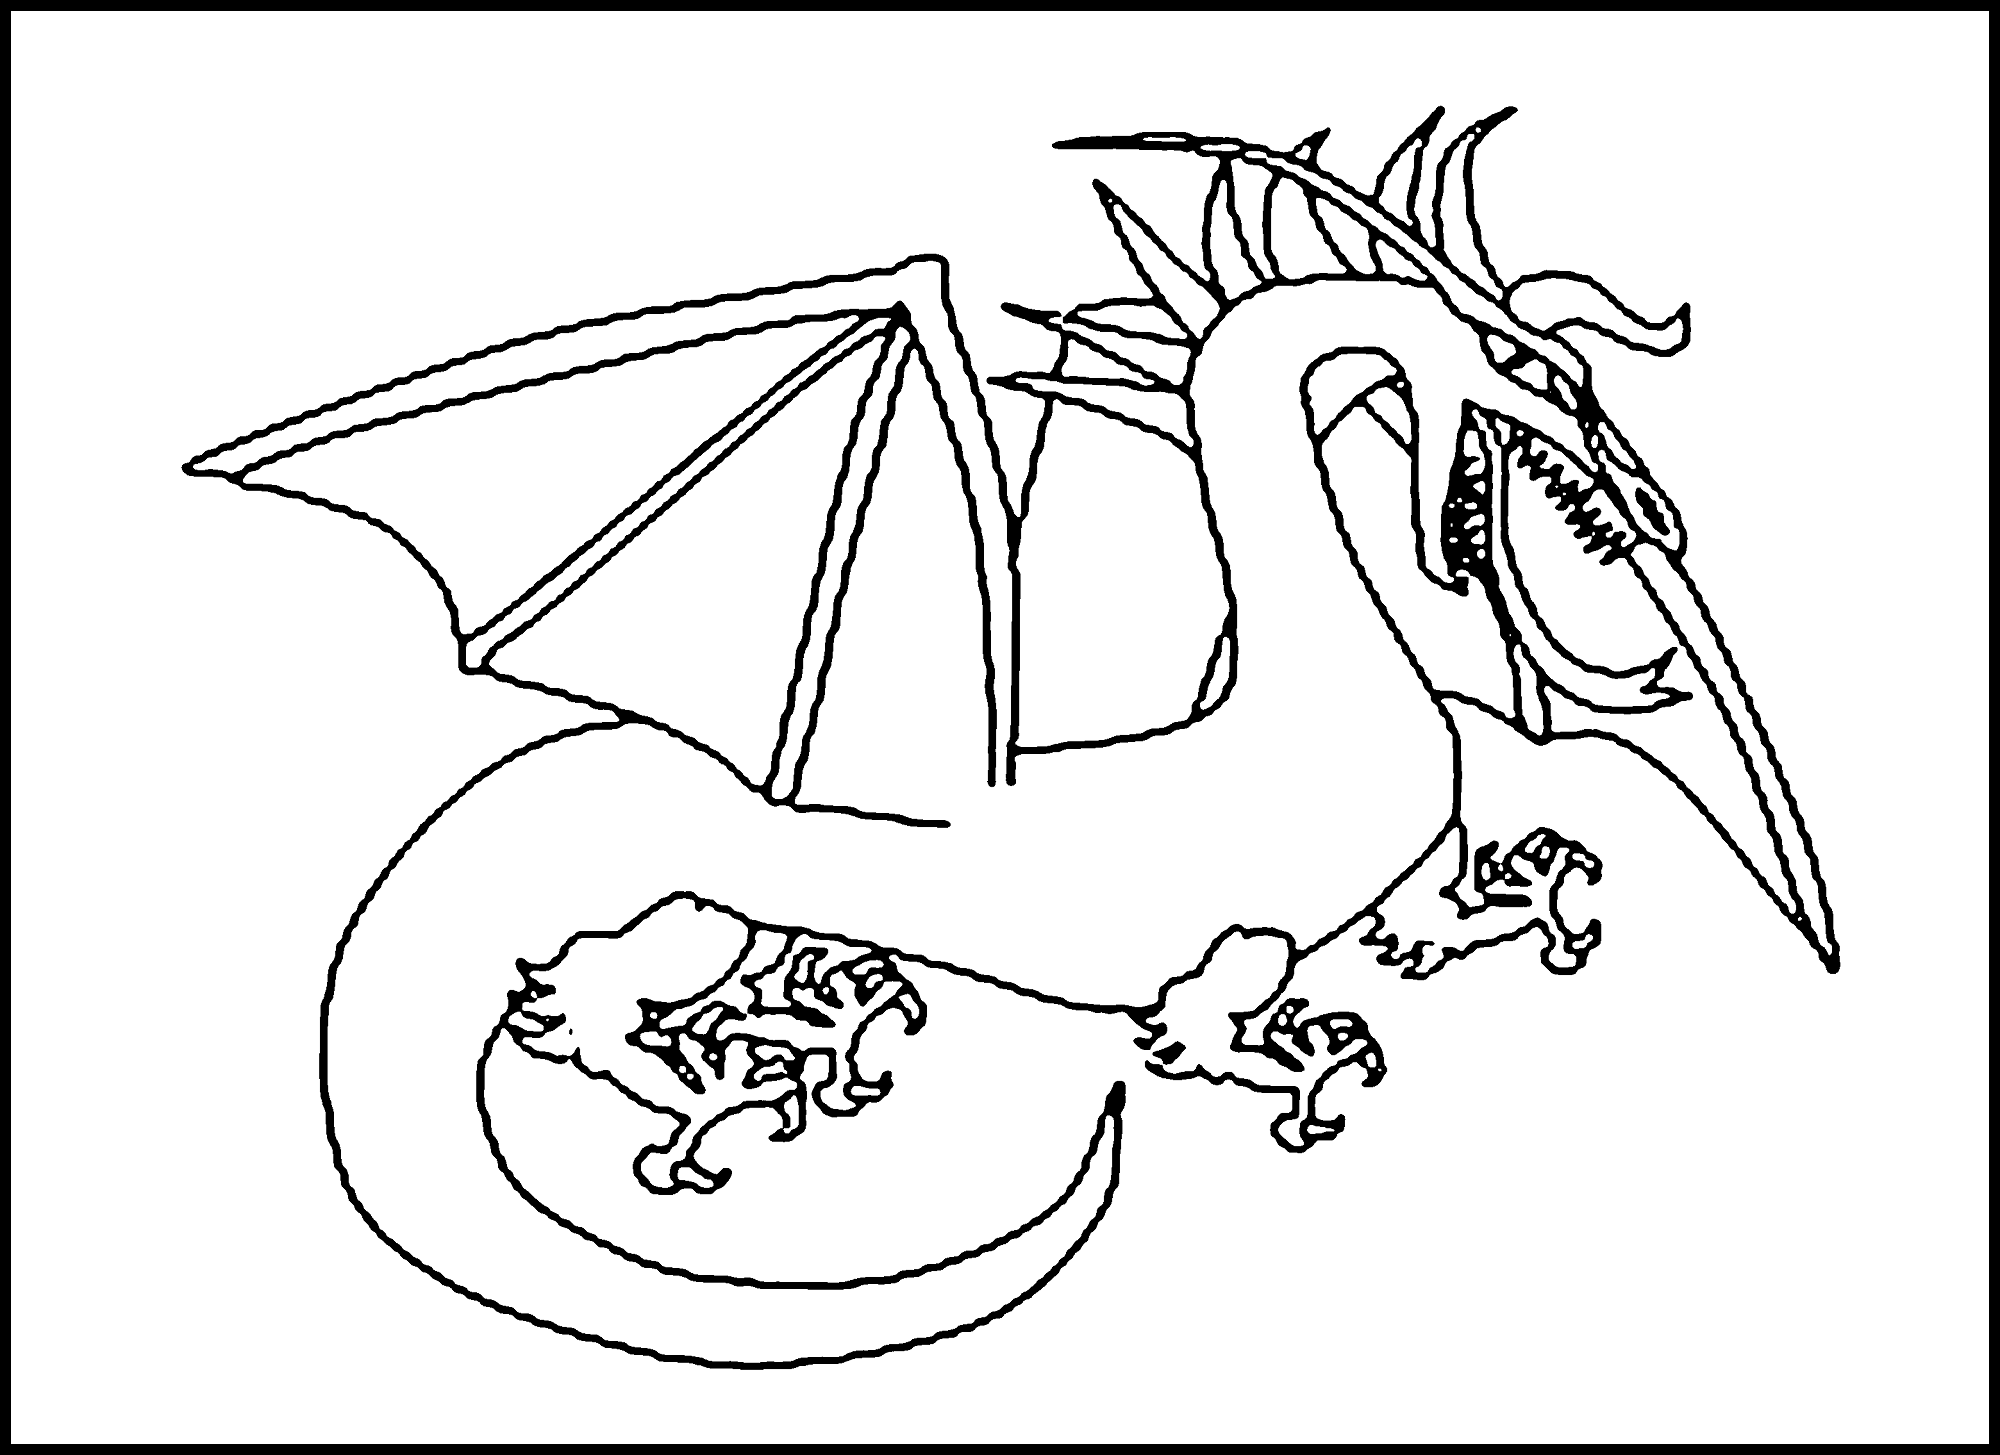 free online dragon coloring pages - dragon coloring pages printable activity shelter